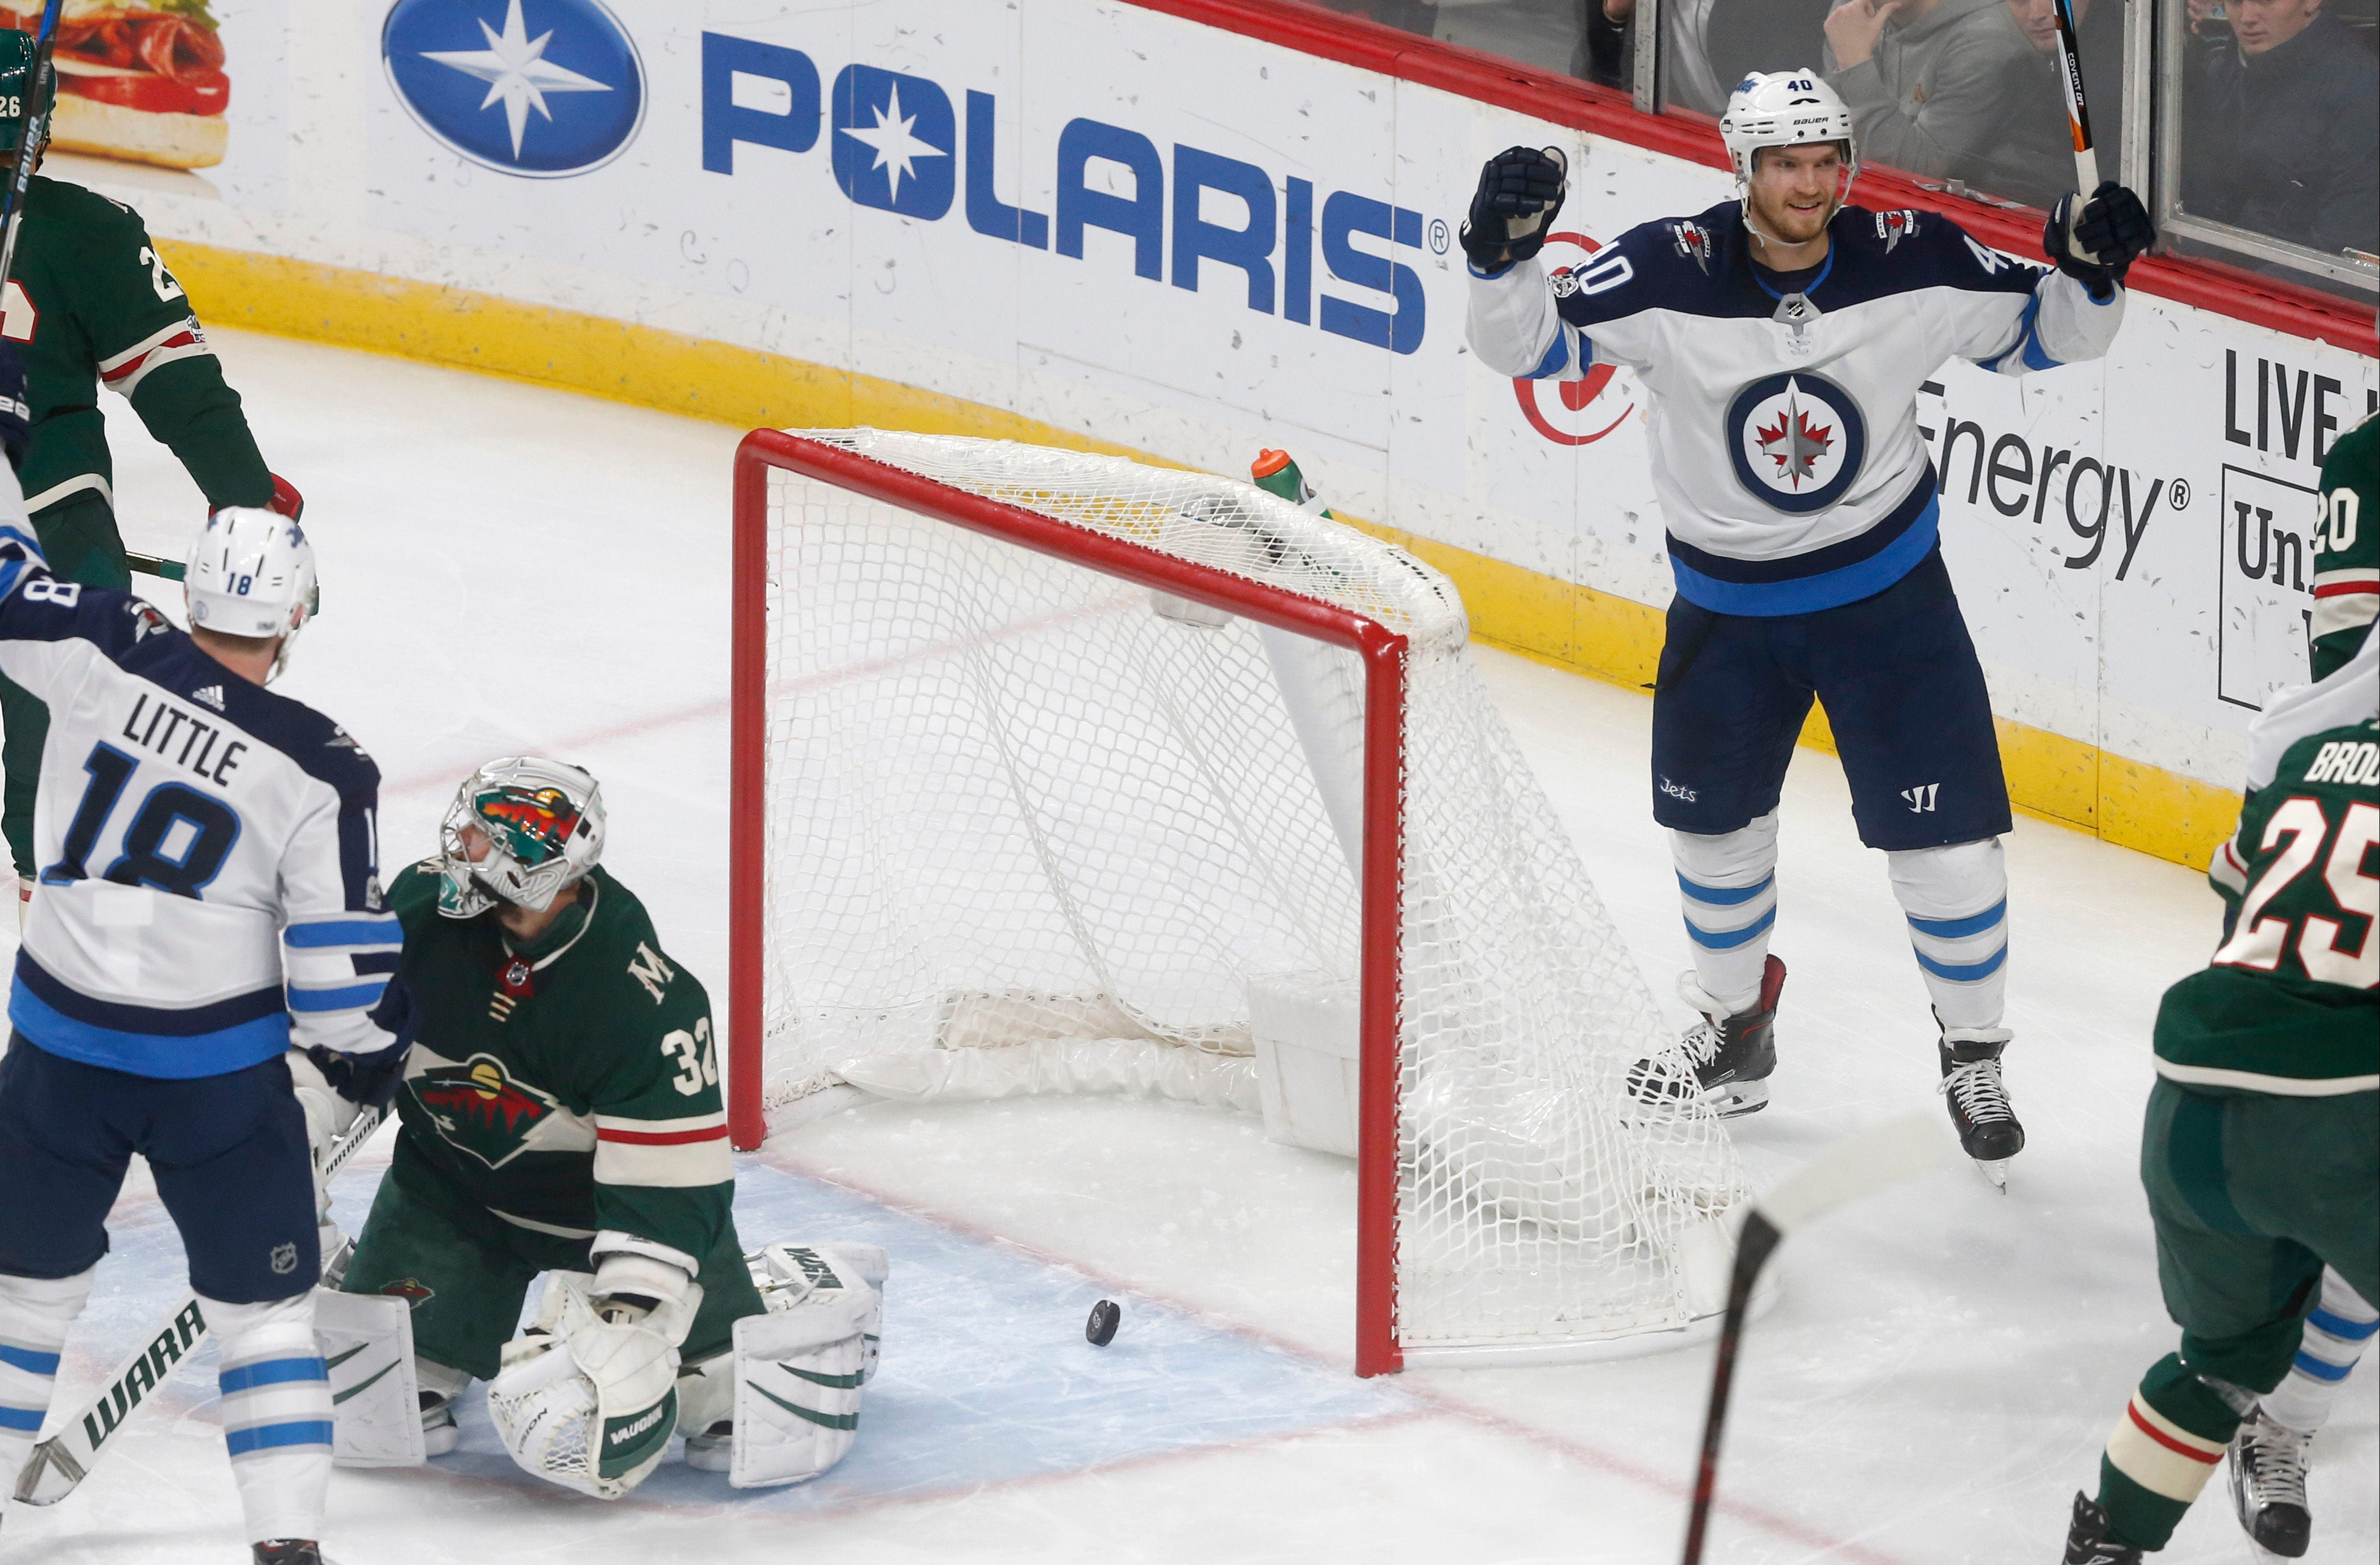 Hellebuyck, Jets continue roll with 2-1 win against Wild